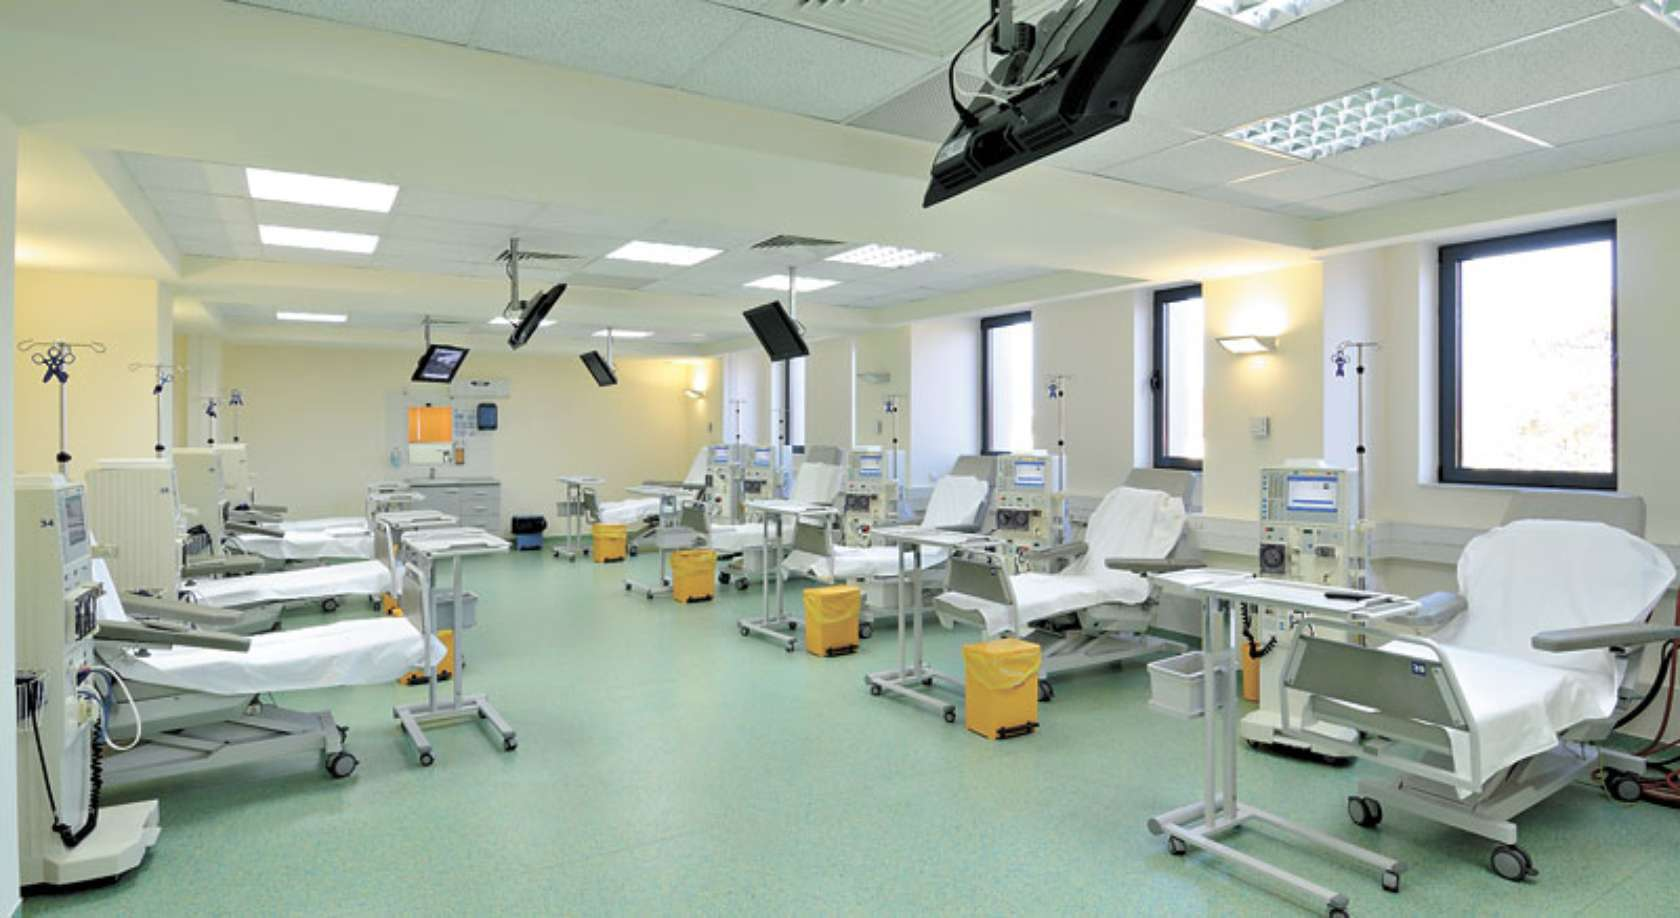 dialysis clinic business plan I work for a general contractor and we have built a few dialysis centers there are some guidelines that vary from state to state on dialysis center layouts.